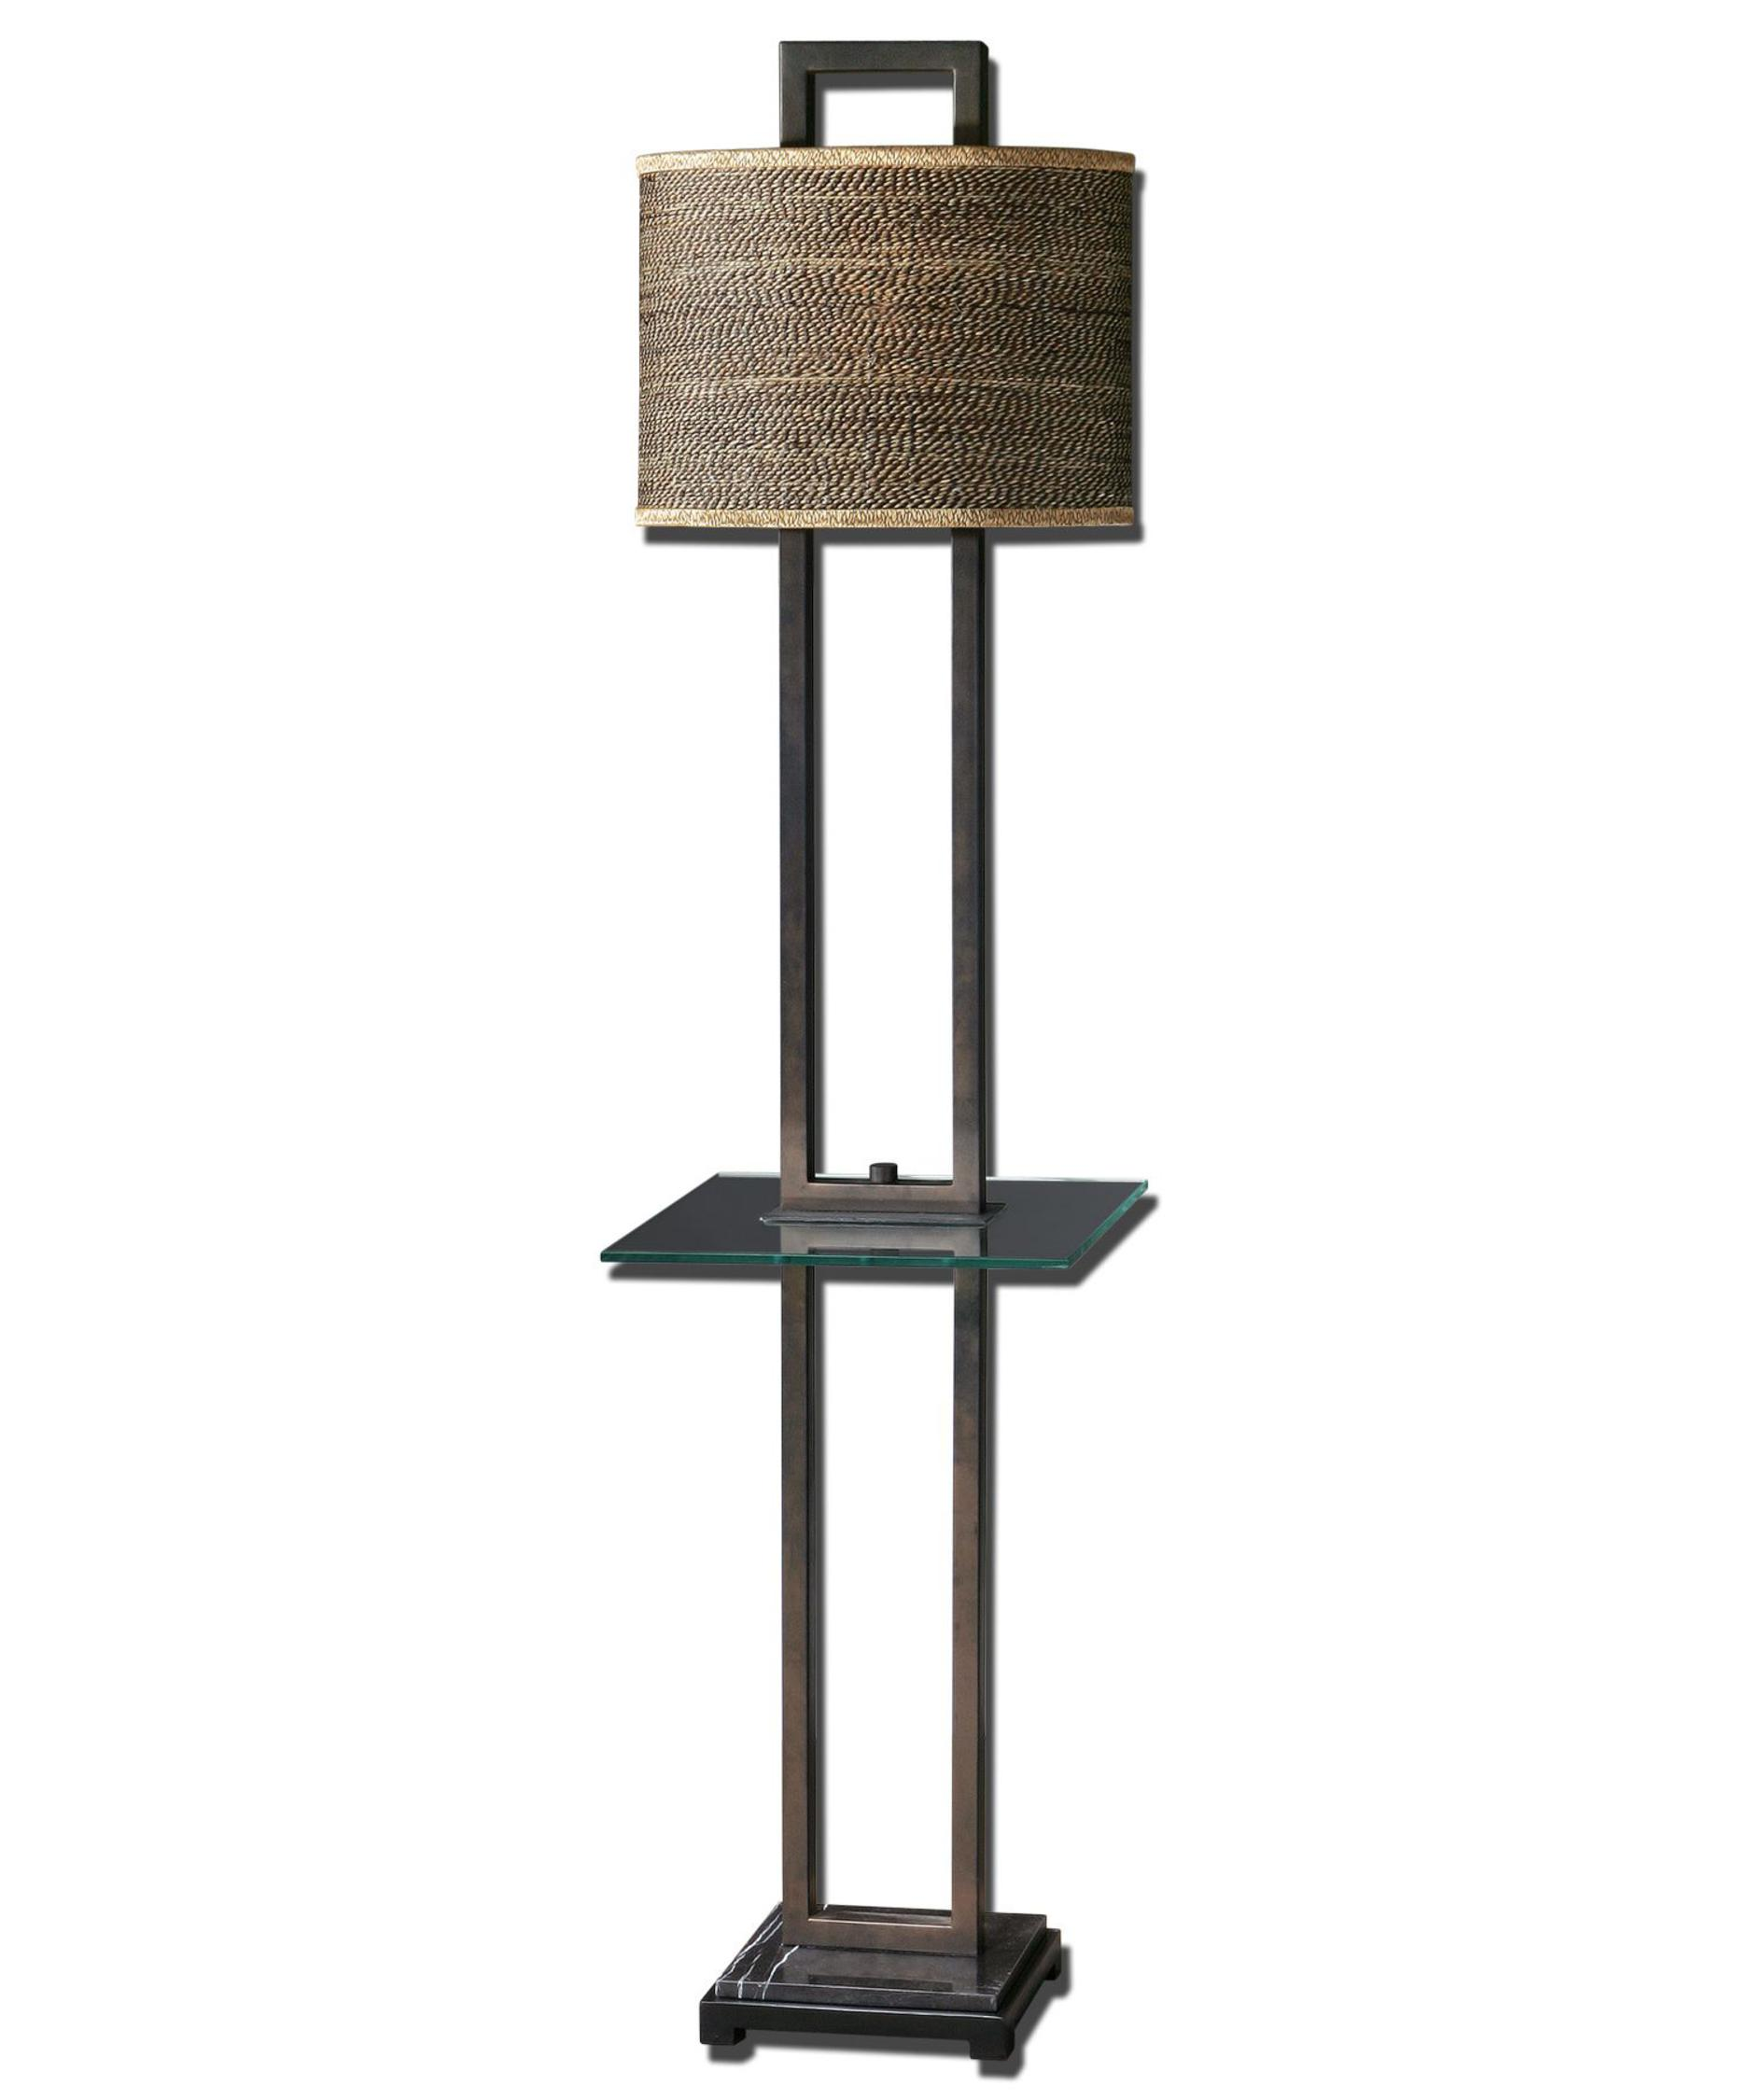 shown in bronze finish and oval drum shade